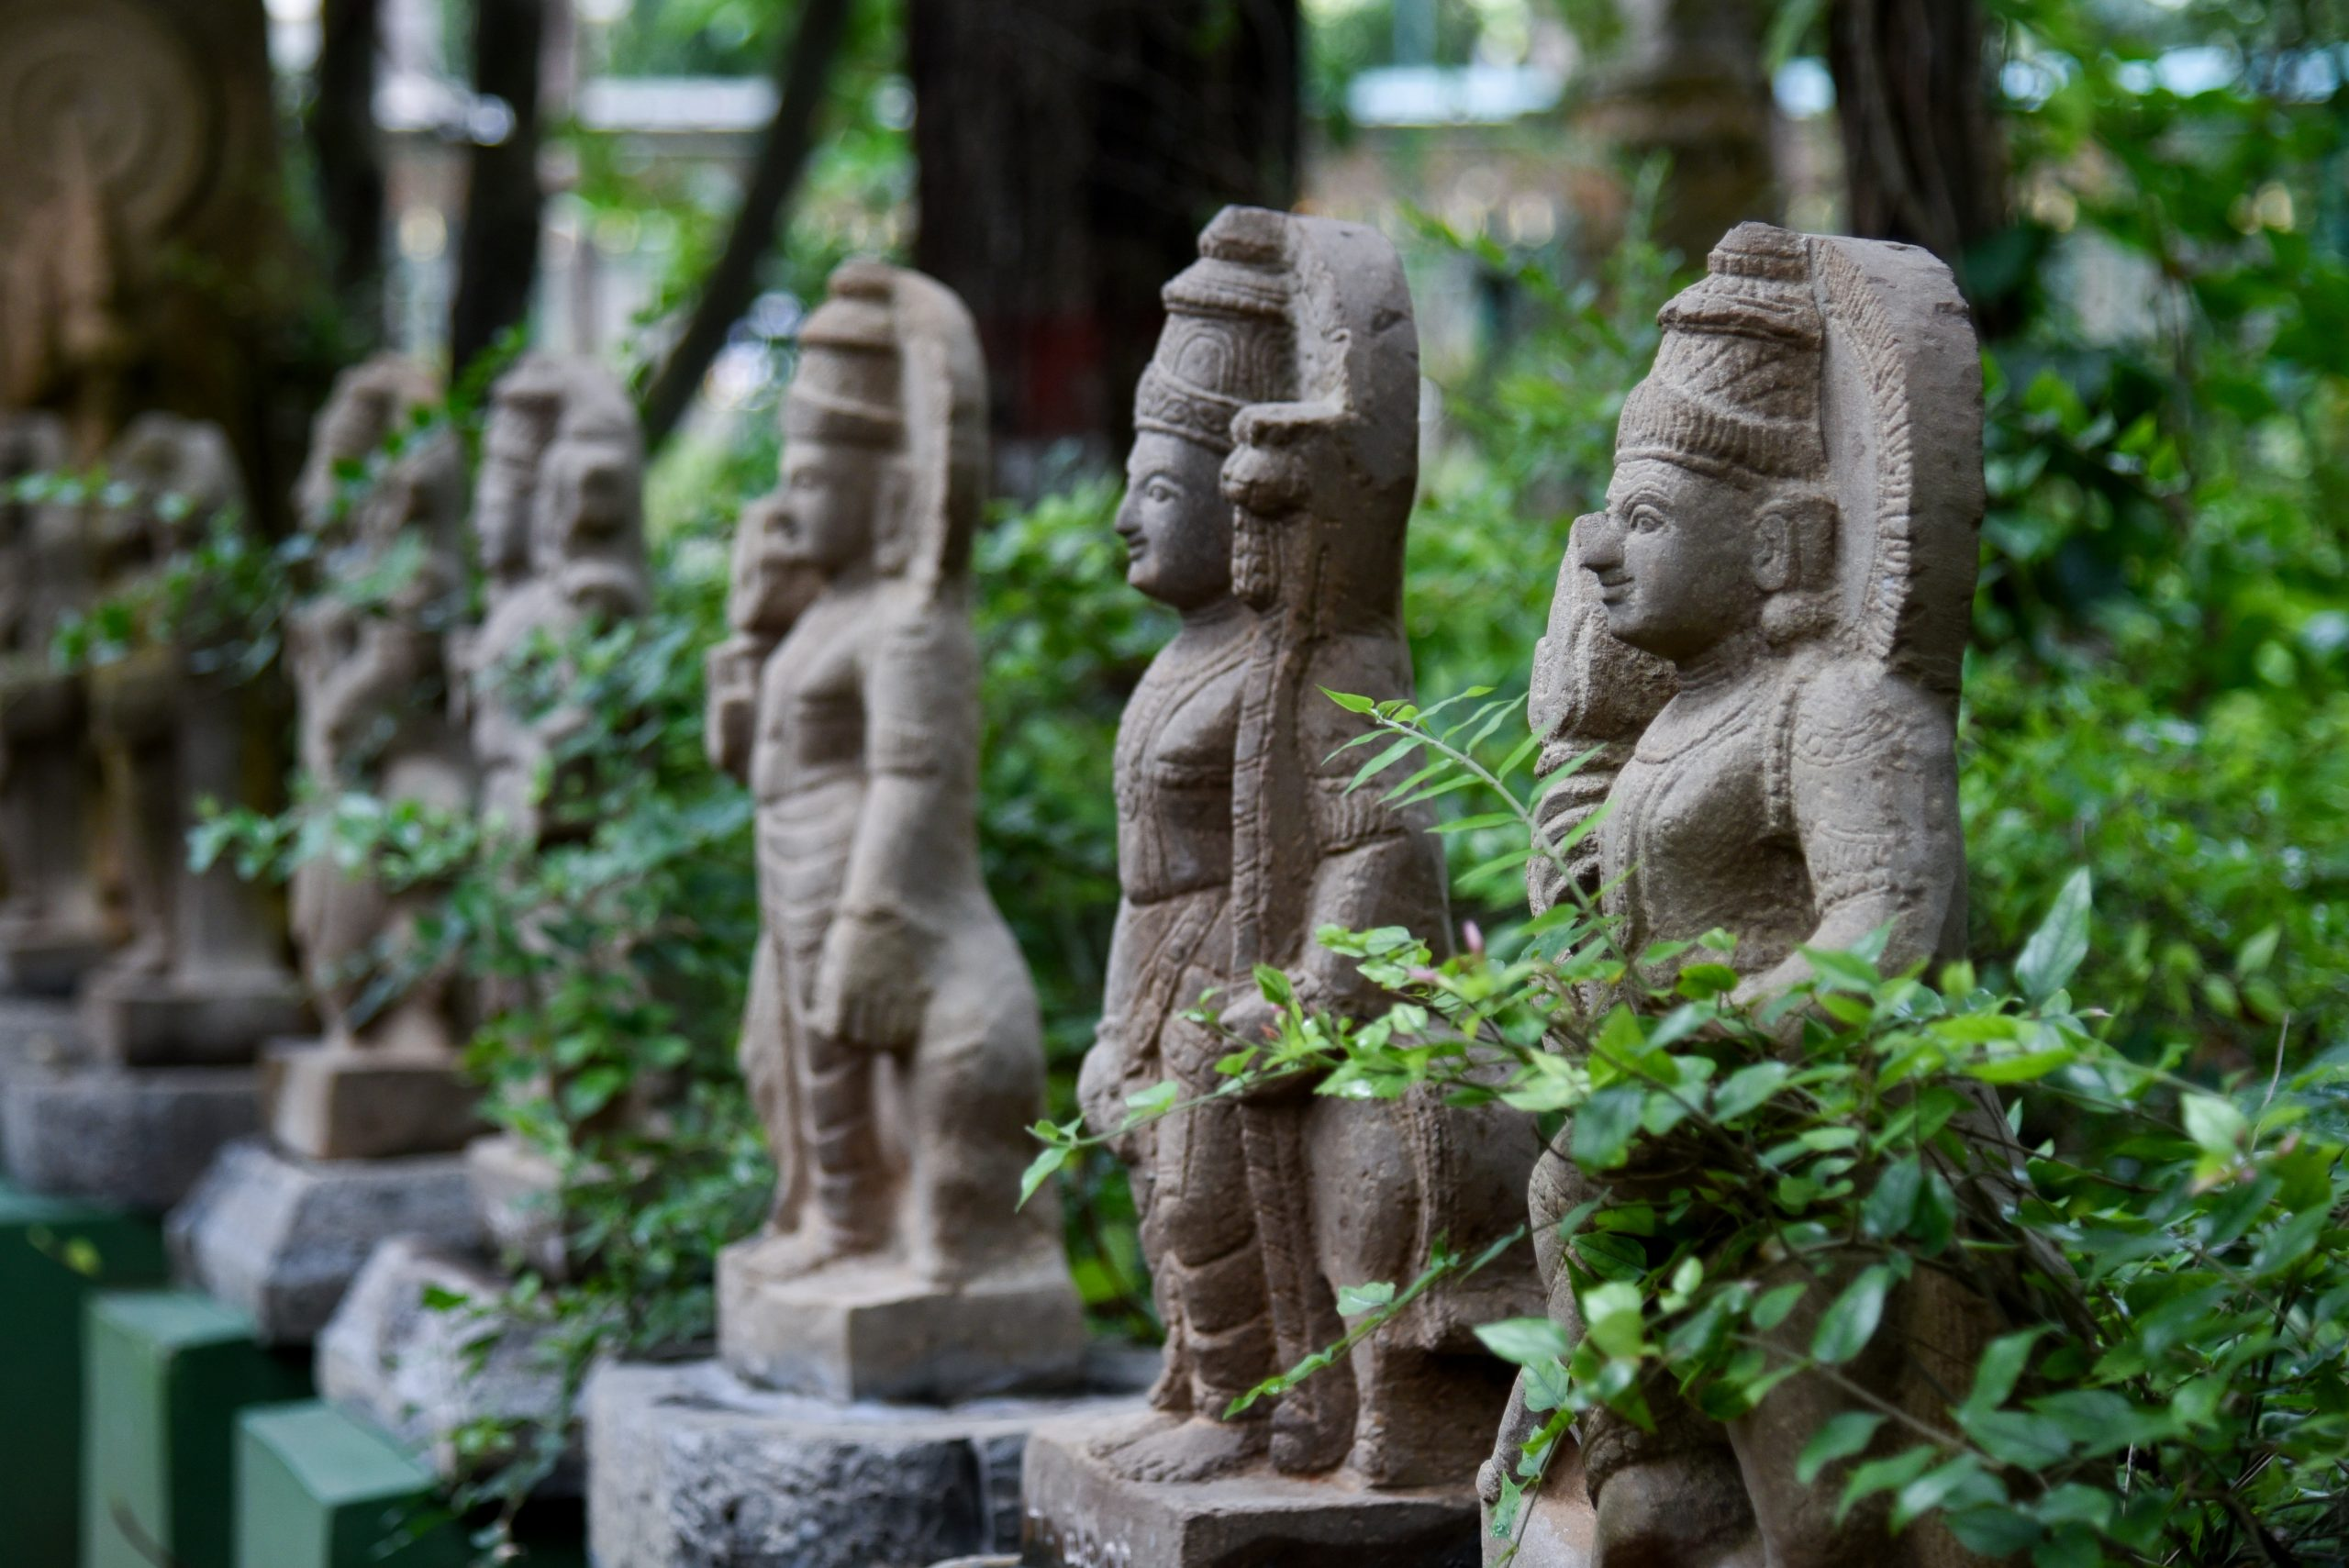 Stone carving statues